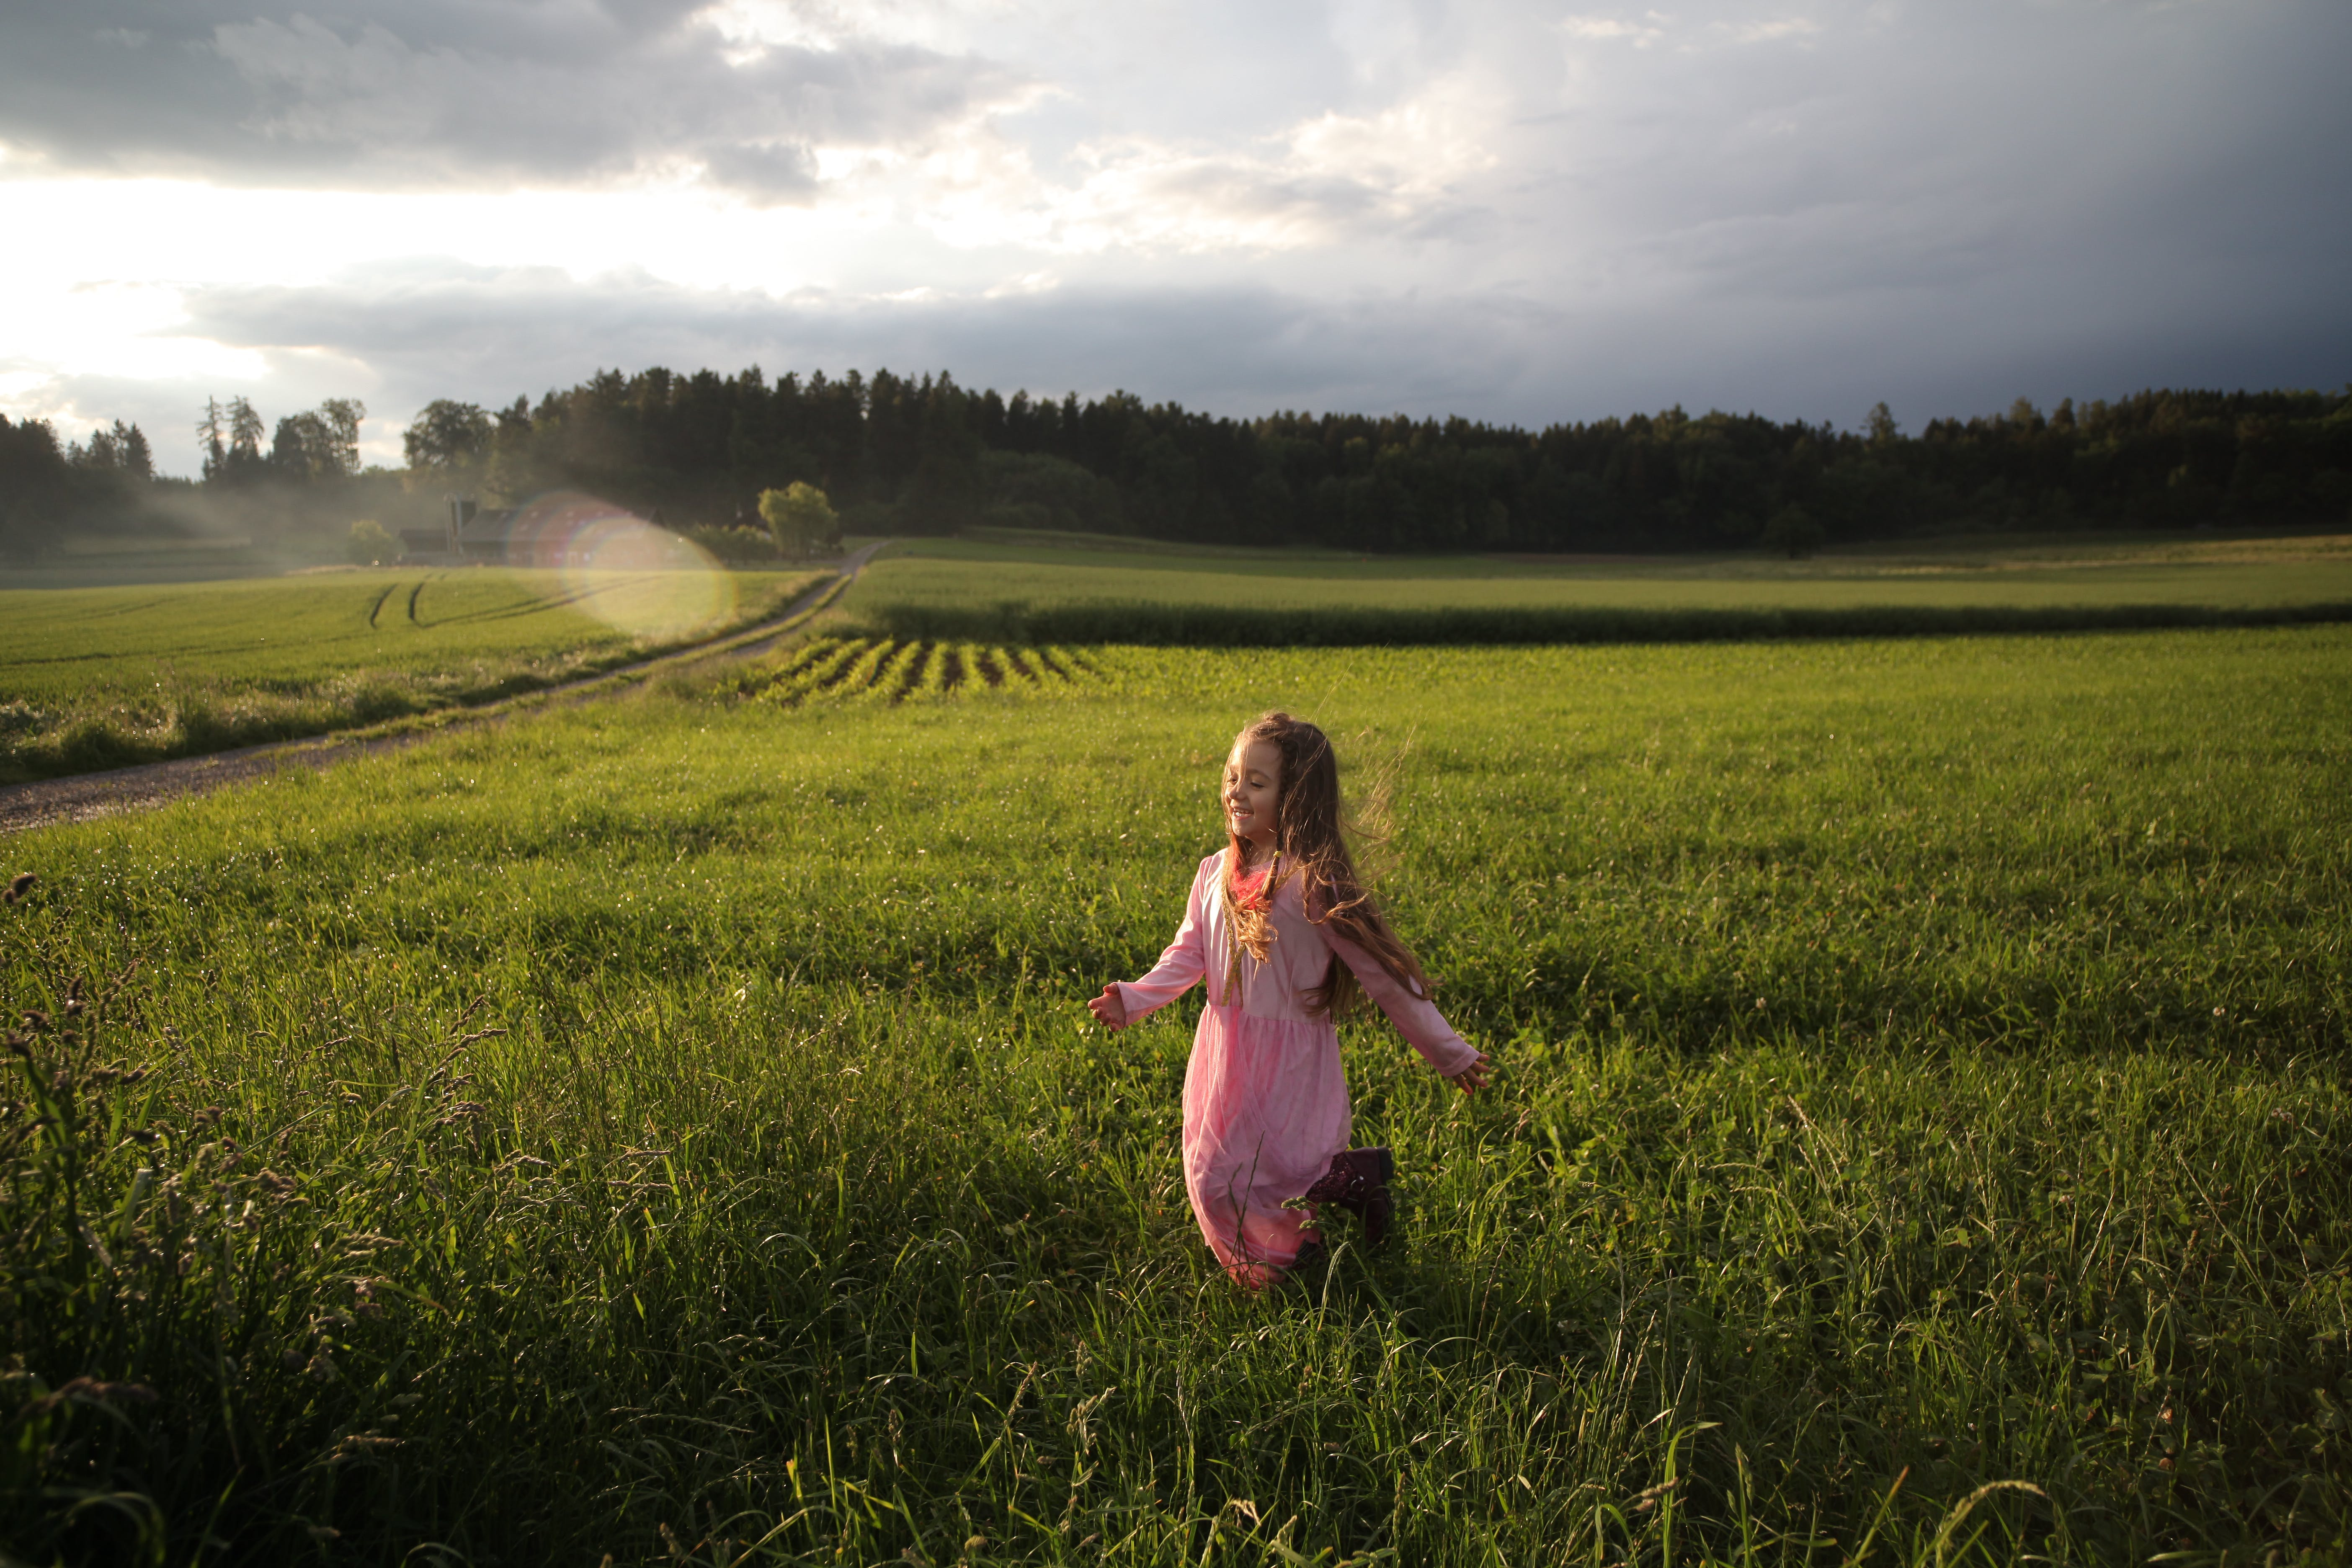 Girl Running on Green Grass Field Near Open Road